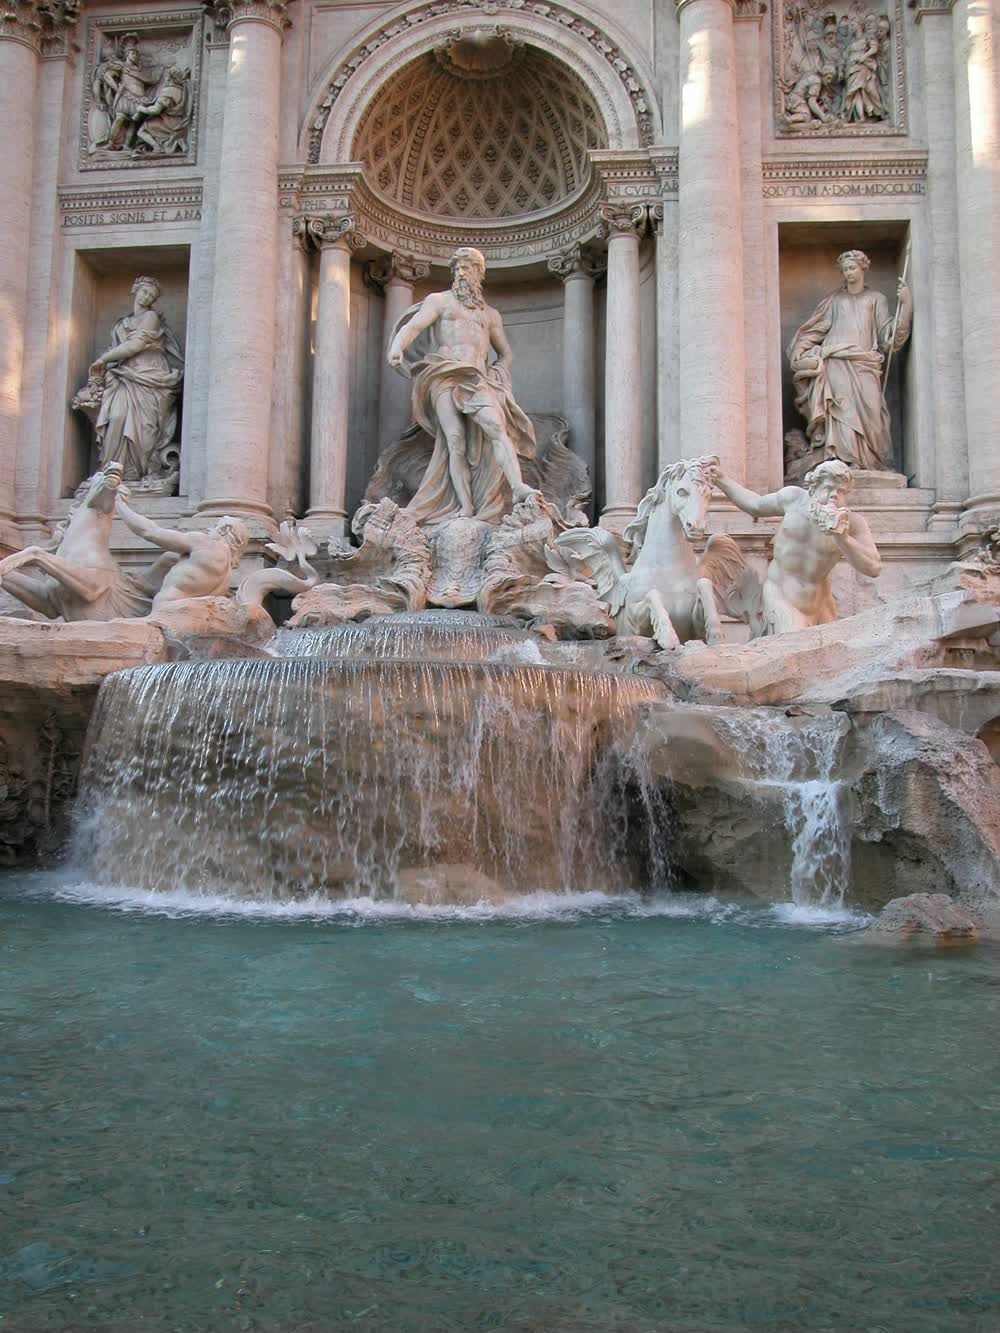 title: Neptune Statue on the Fontana di Trevi